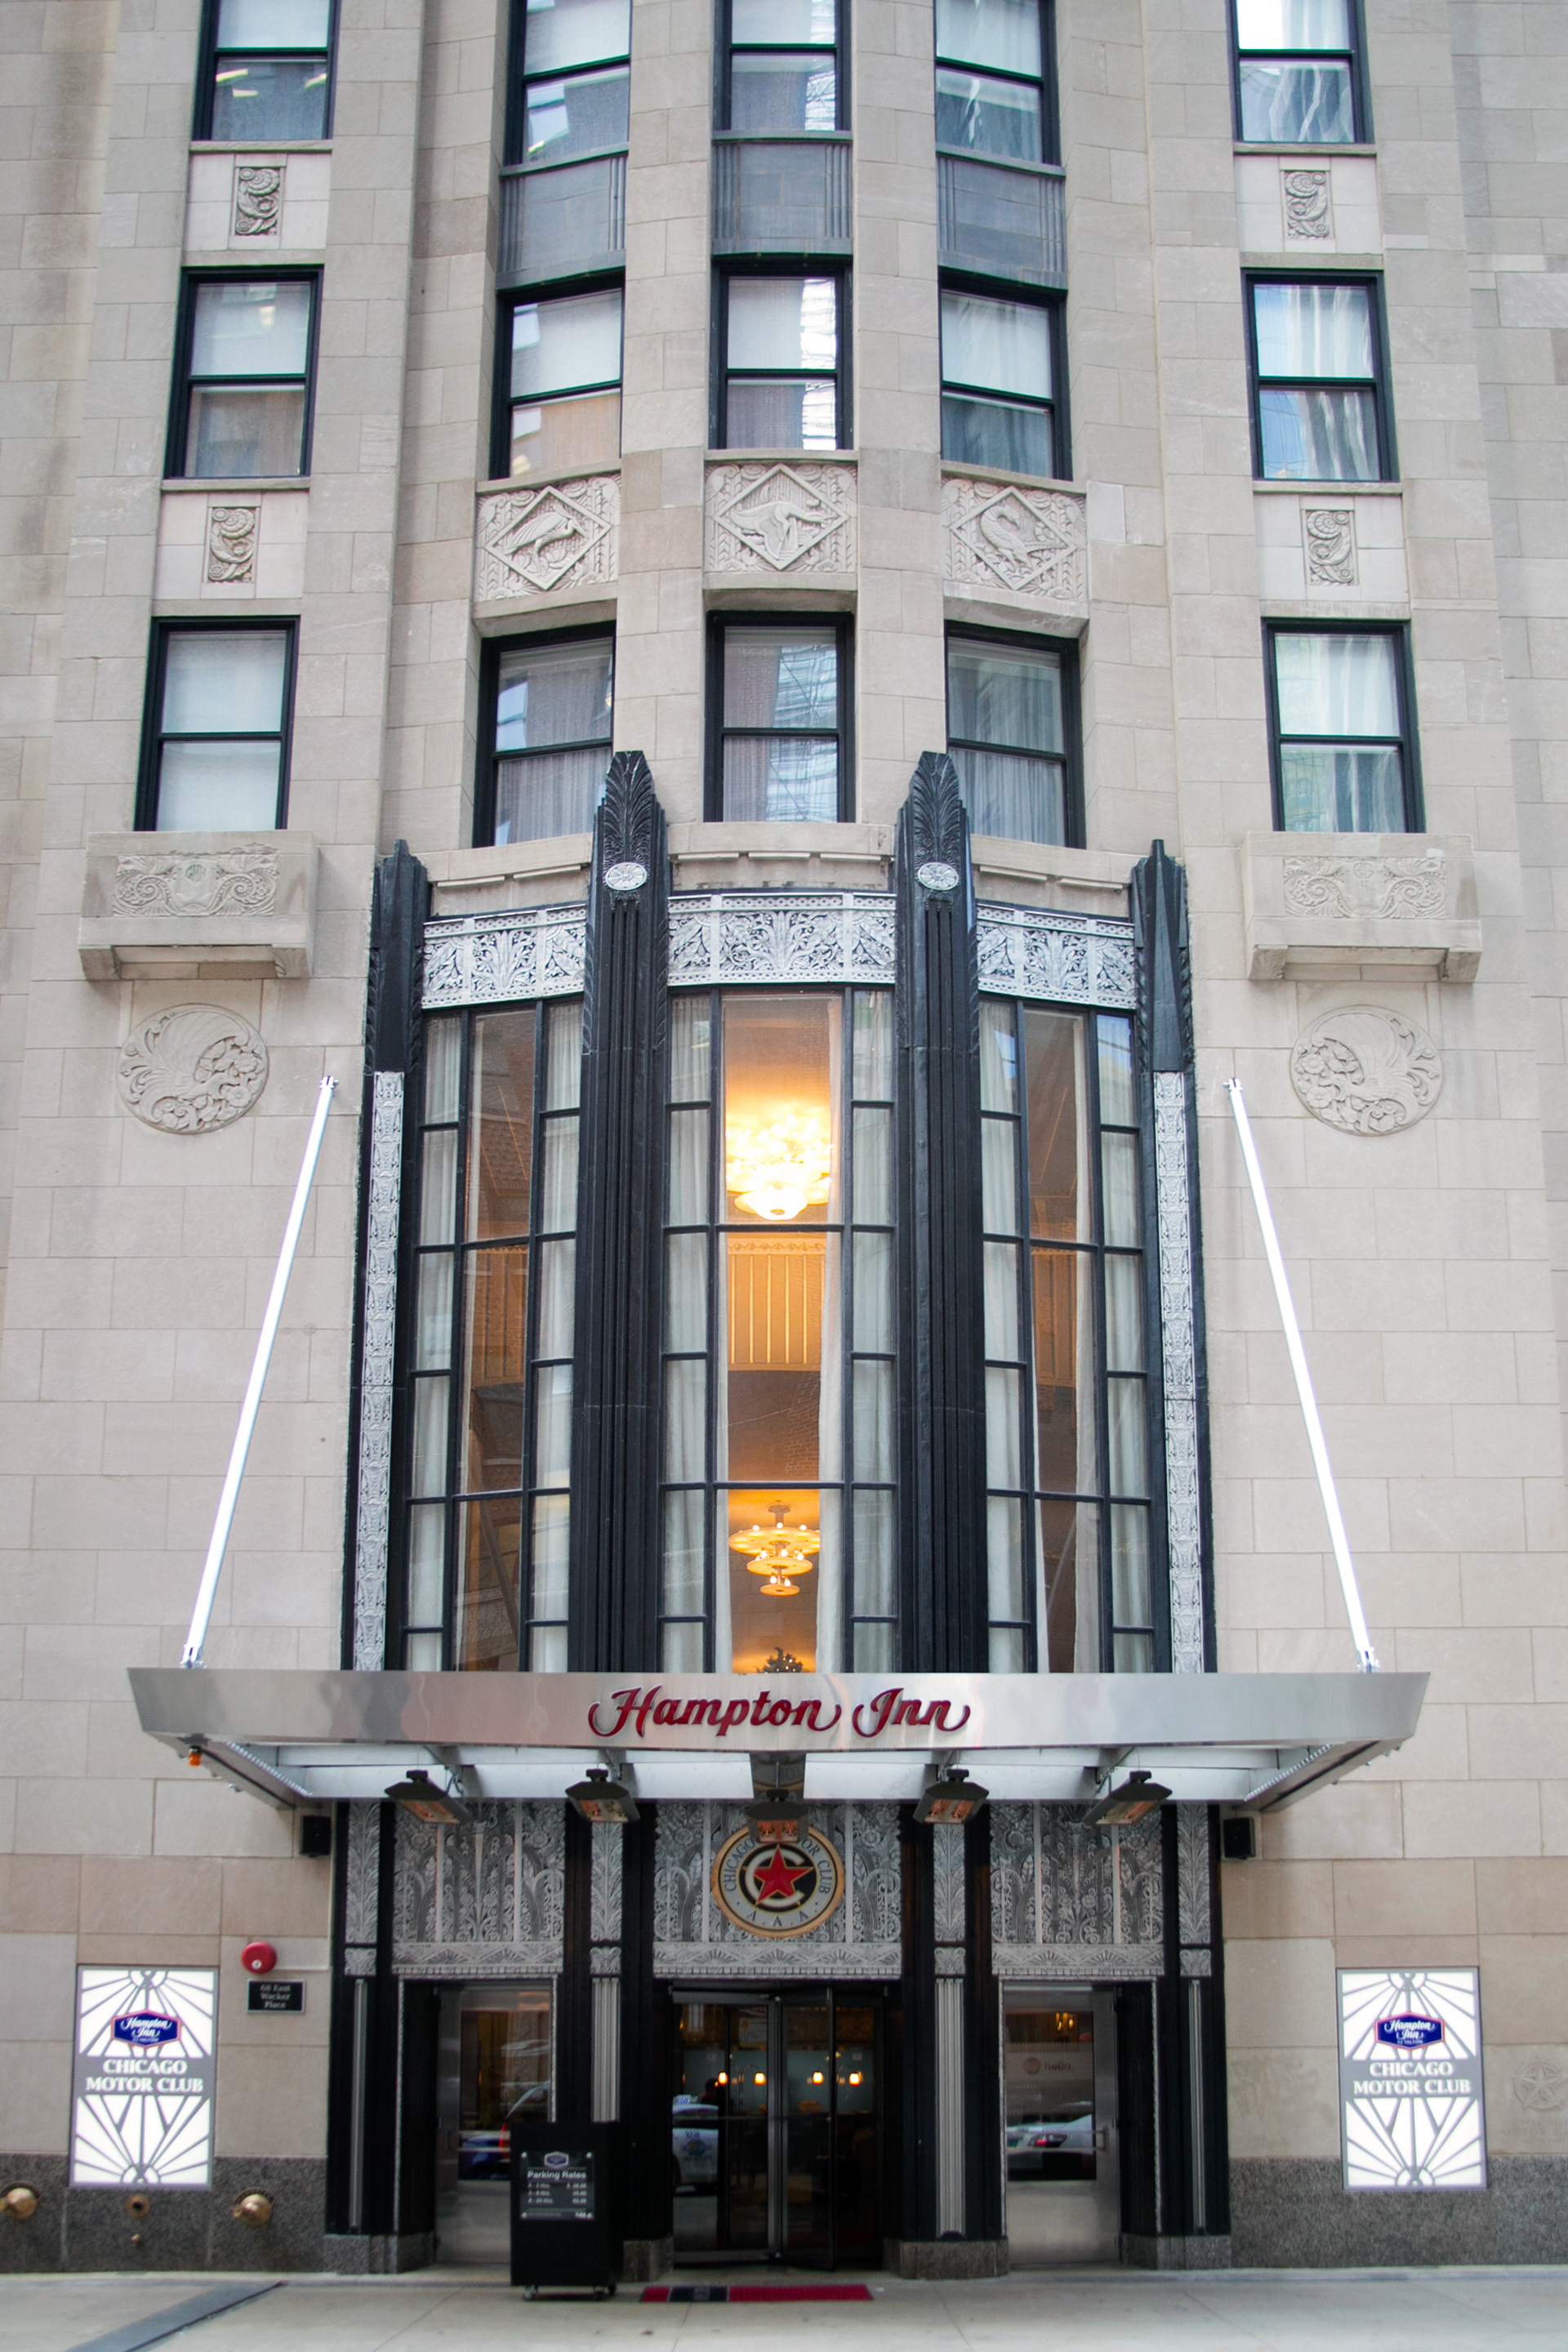 Hampton Inn, Chicago Motor Club - Chicago, IL Developed by MDG, Asset Management by MAM